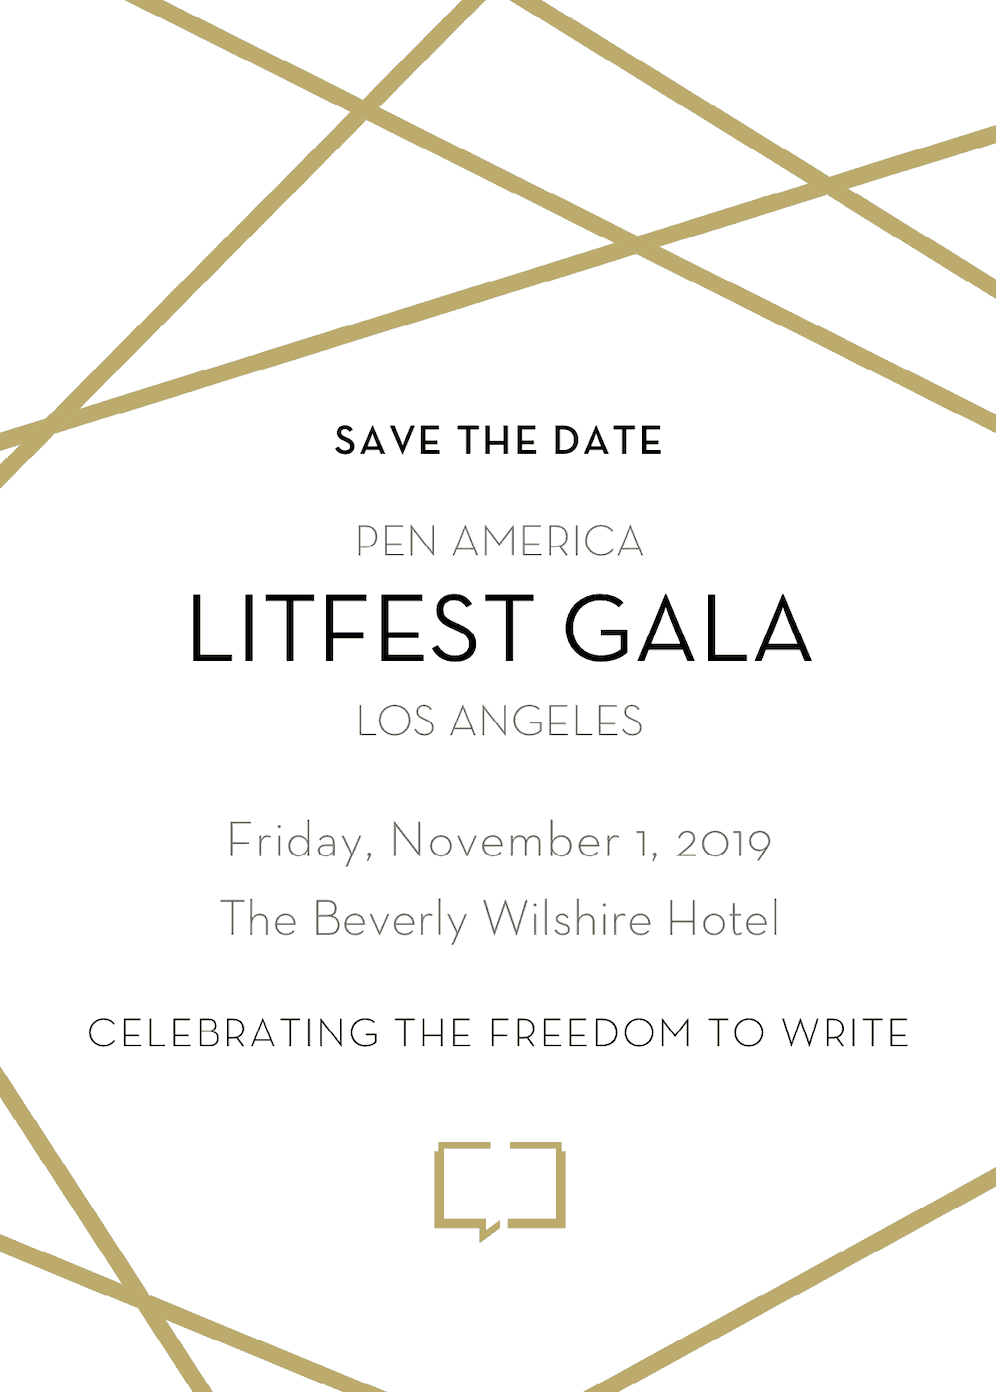 Save the Date invitation for the 2019 LitFest Gala on Friday November 1 at the Beverly Wilshire Hotel